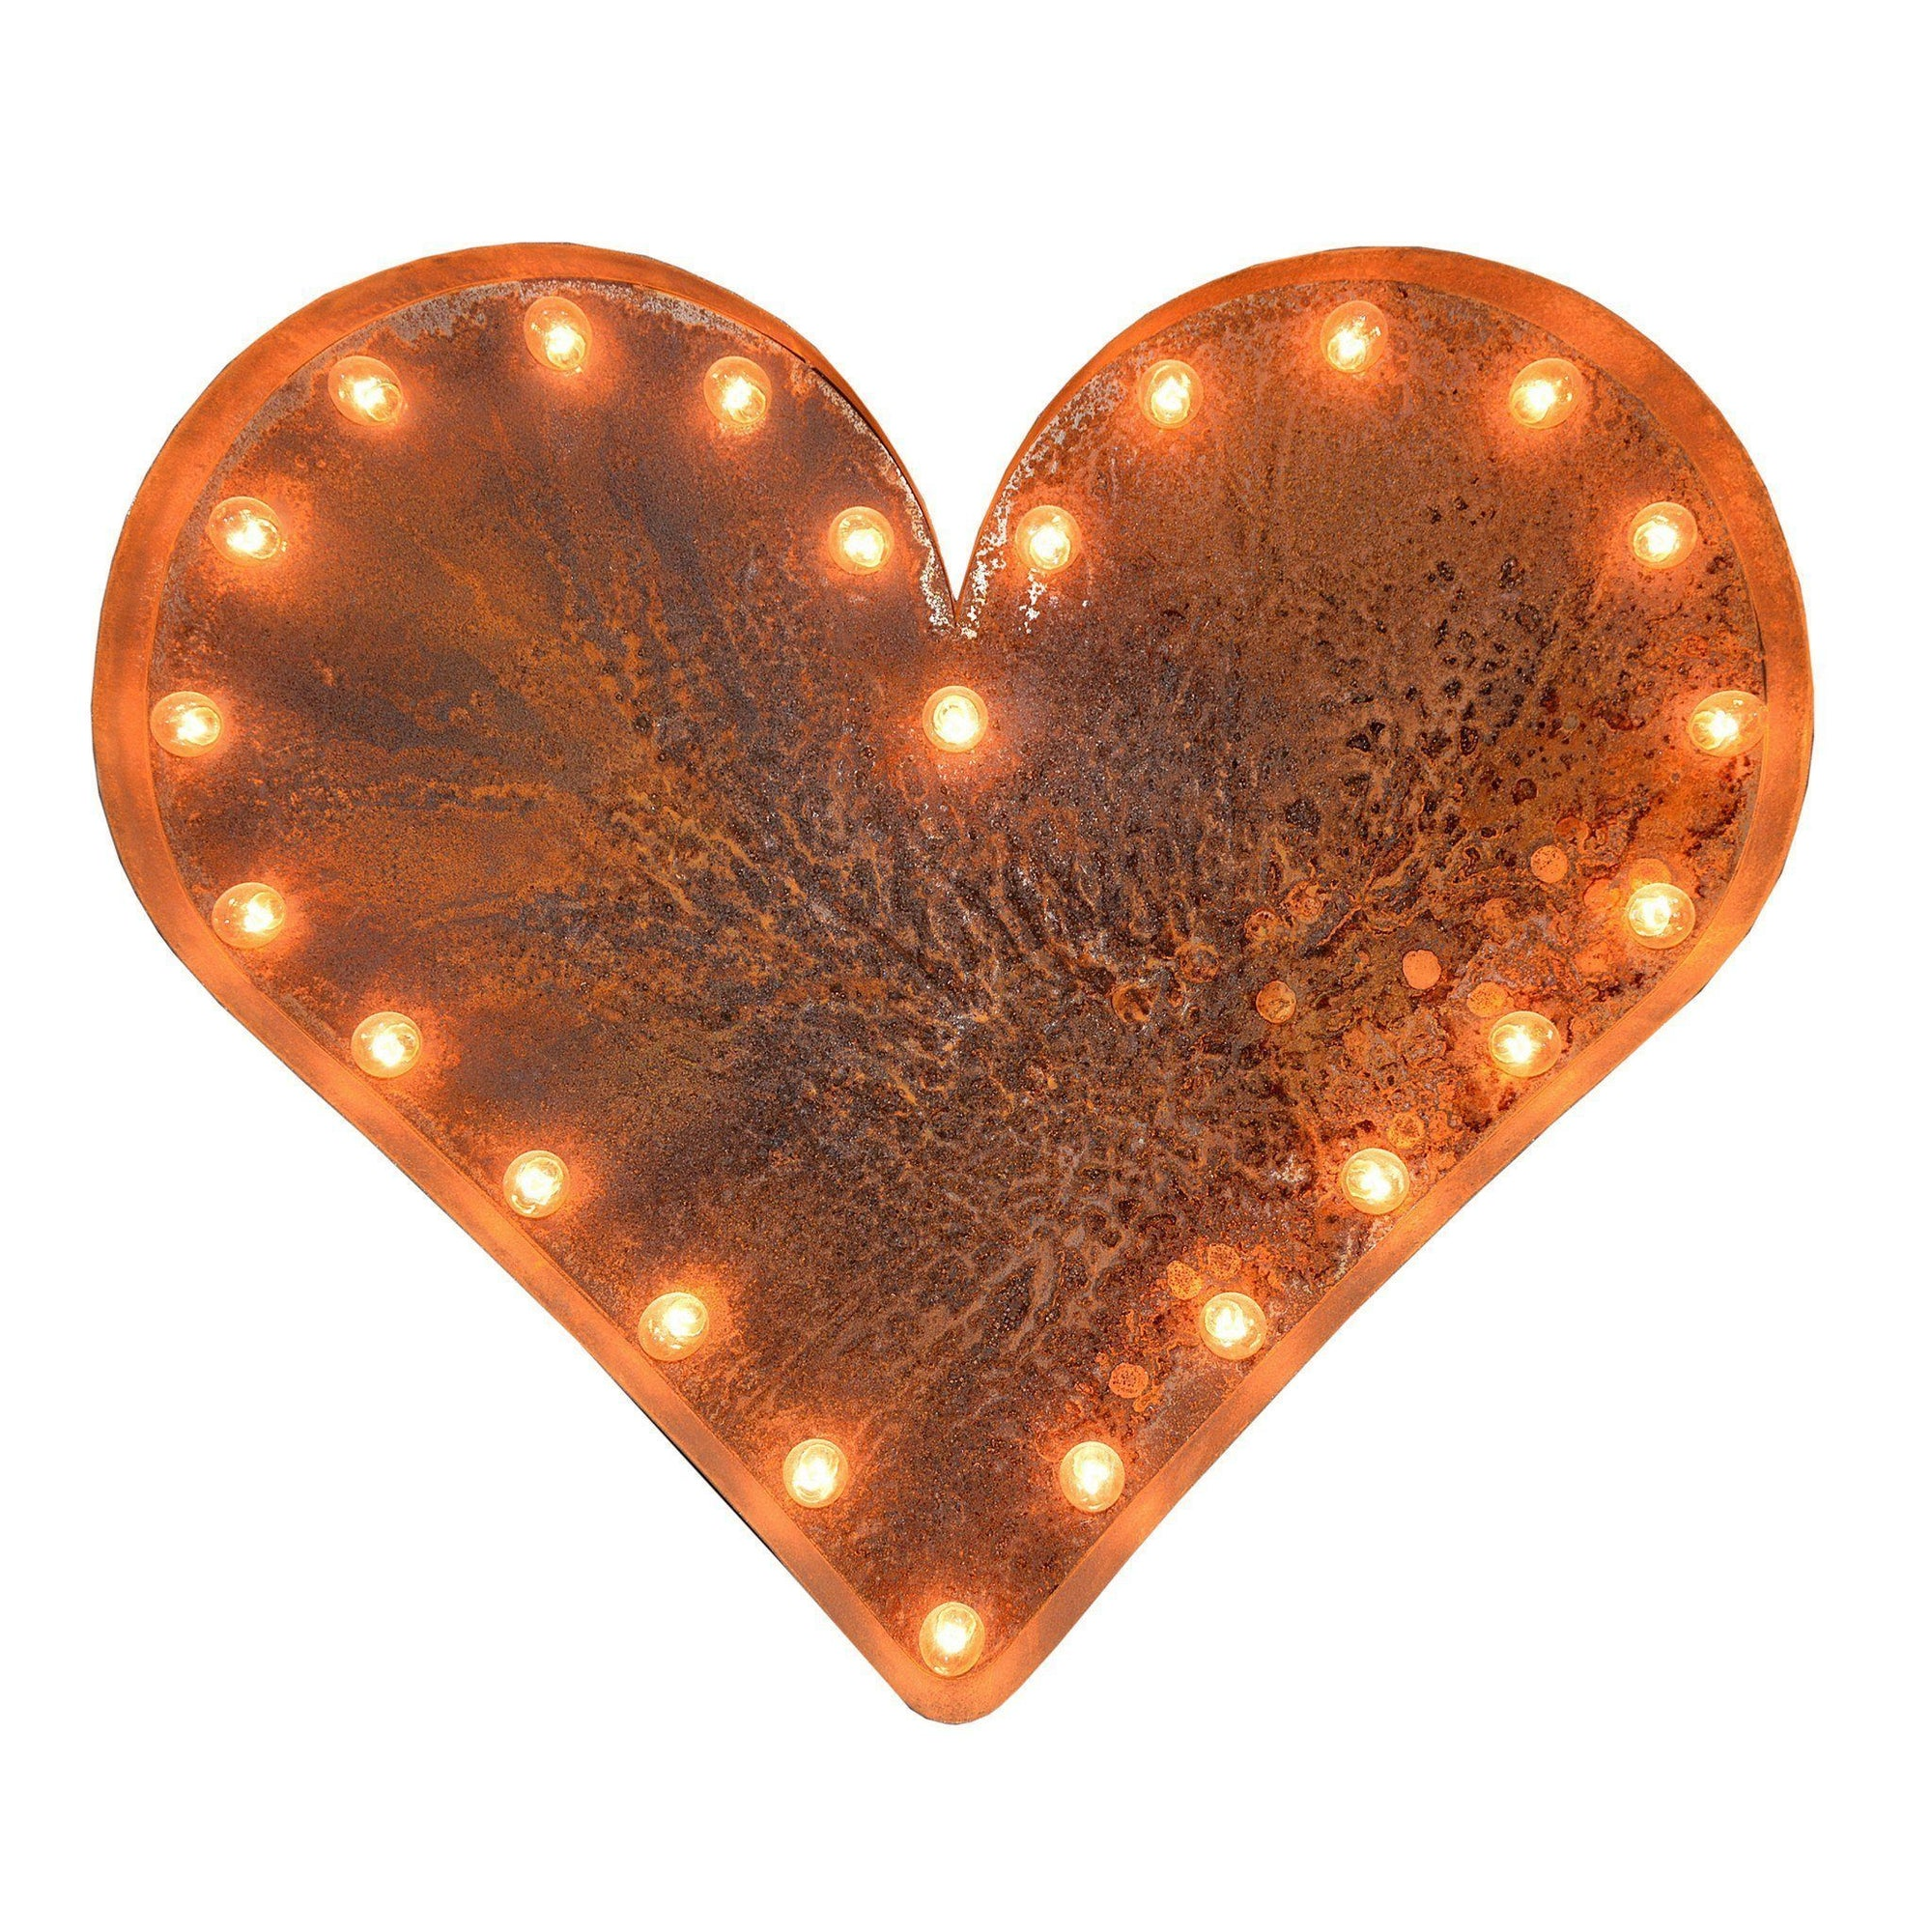 24 Heart Vintage Marquee Lights Sign Rustic Buy Marquee Lights Online The Rusty Marquee